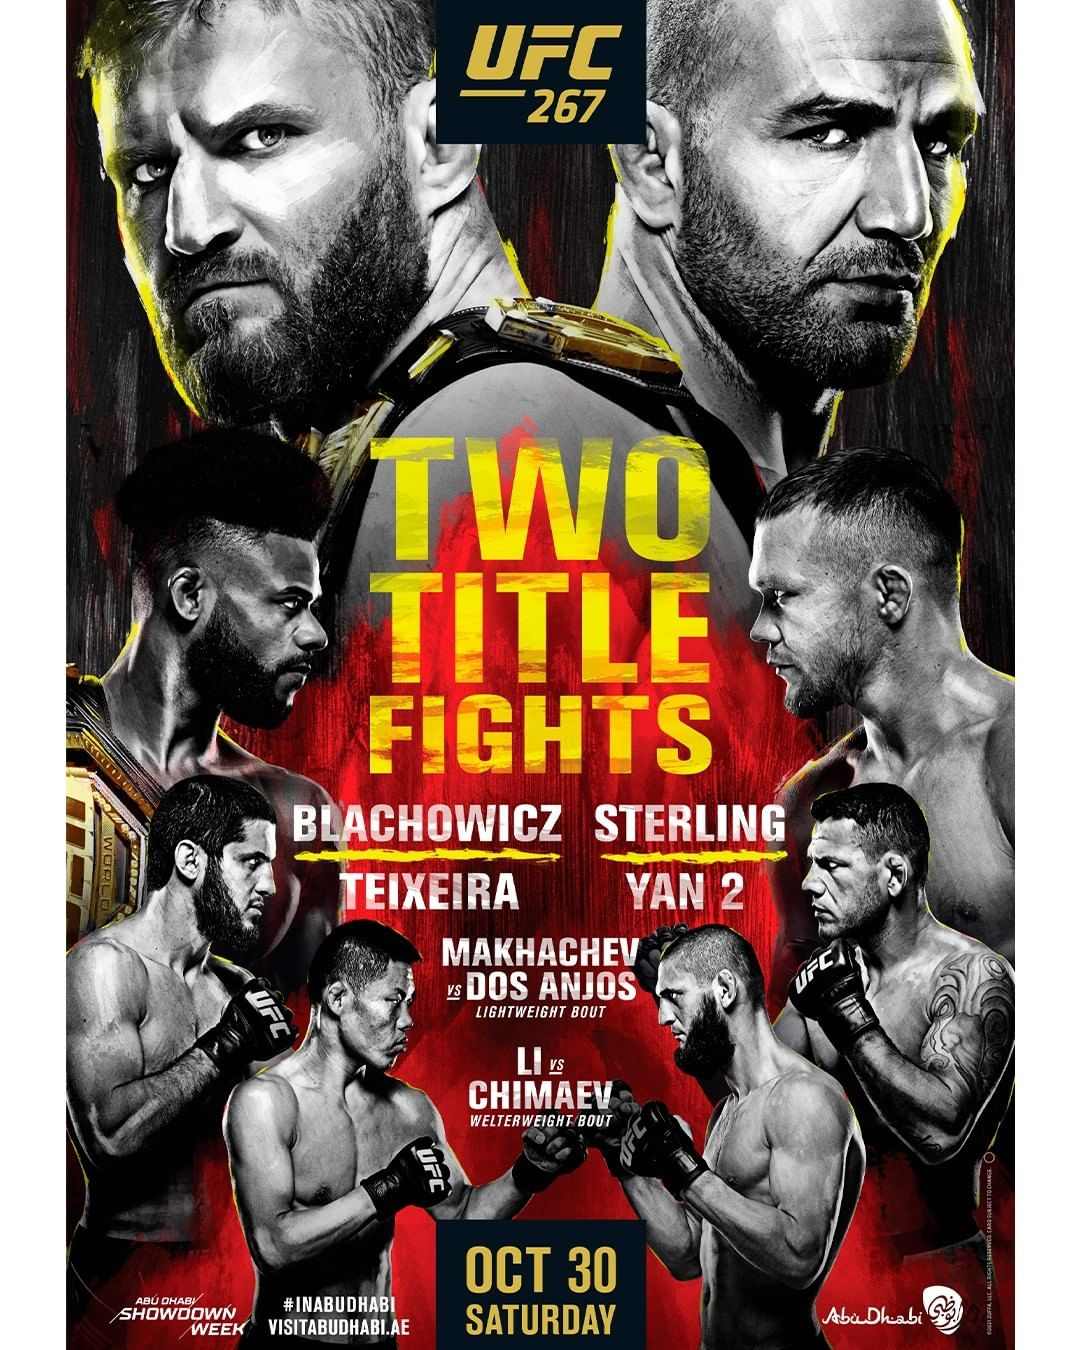 UFC 267 Fight Card Poster